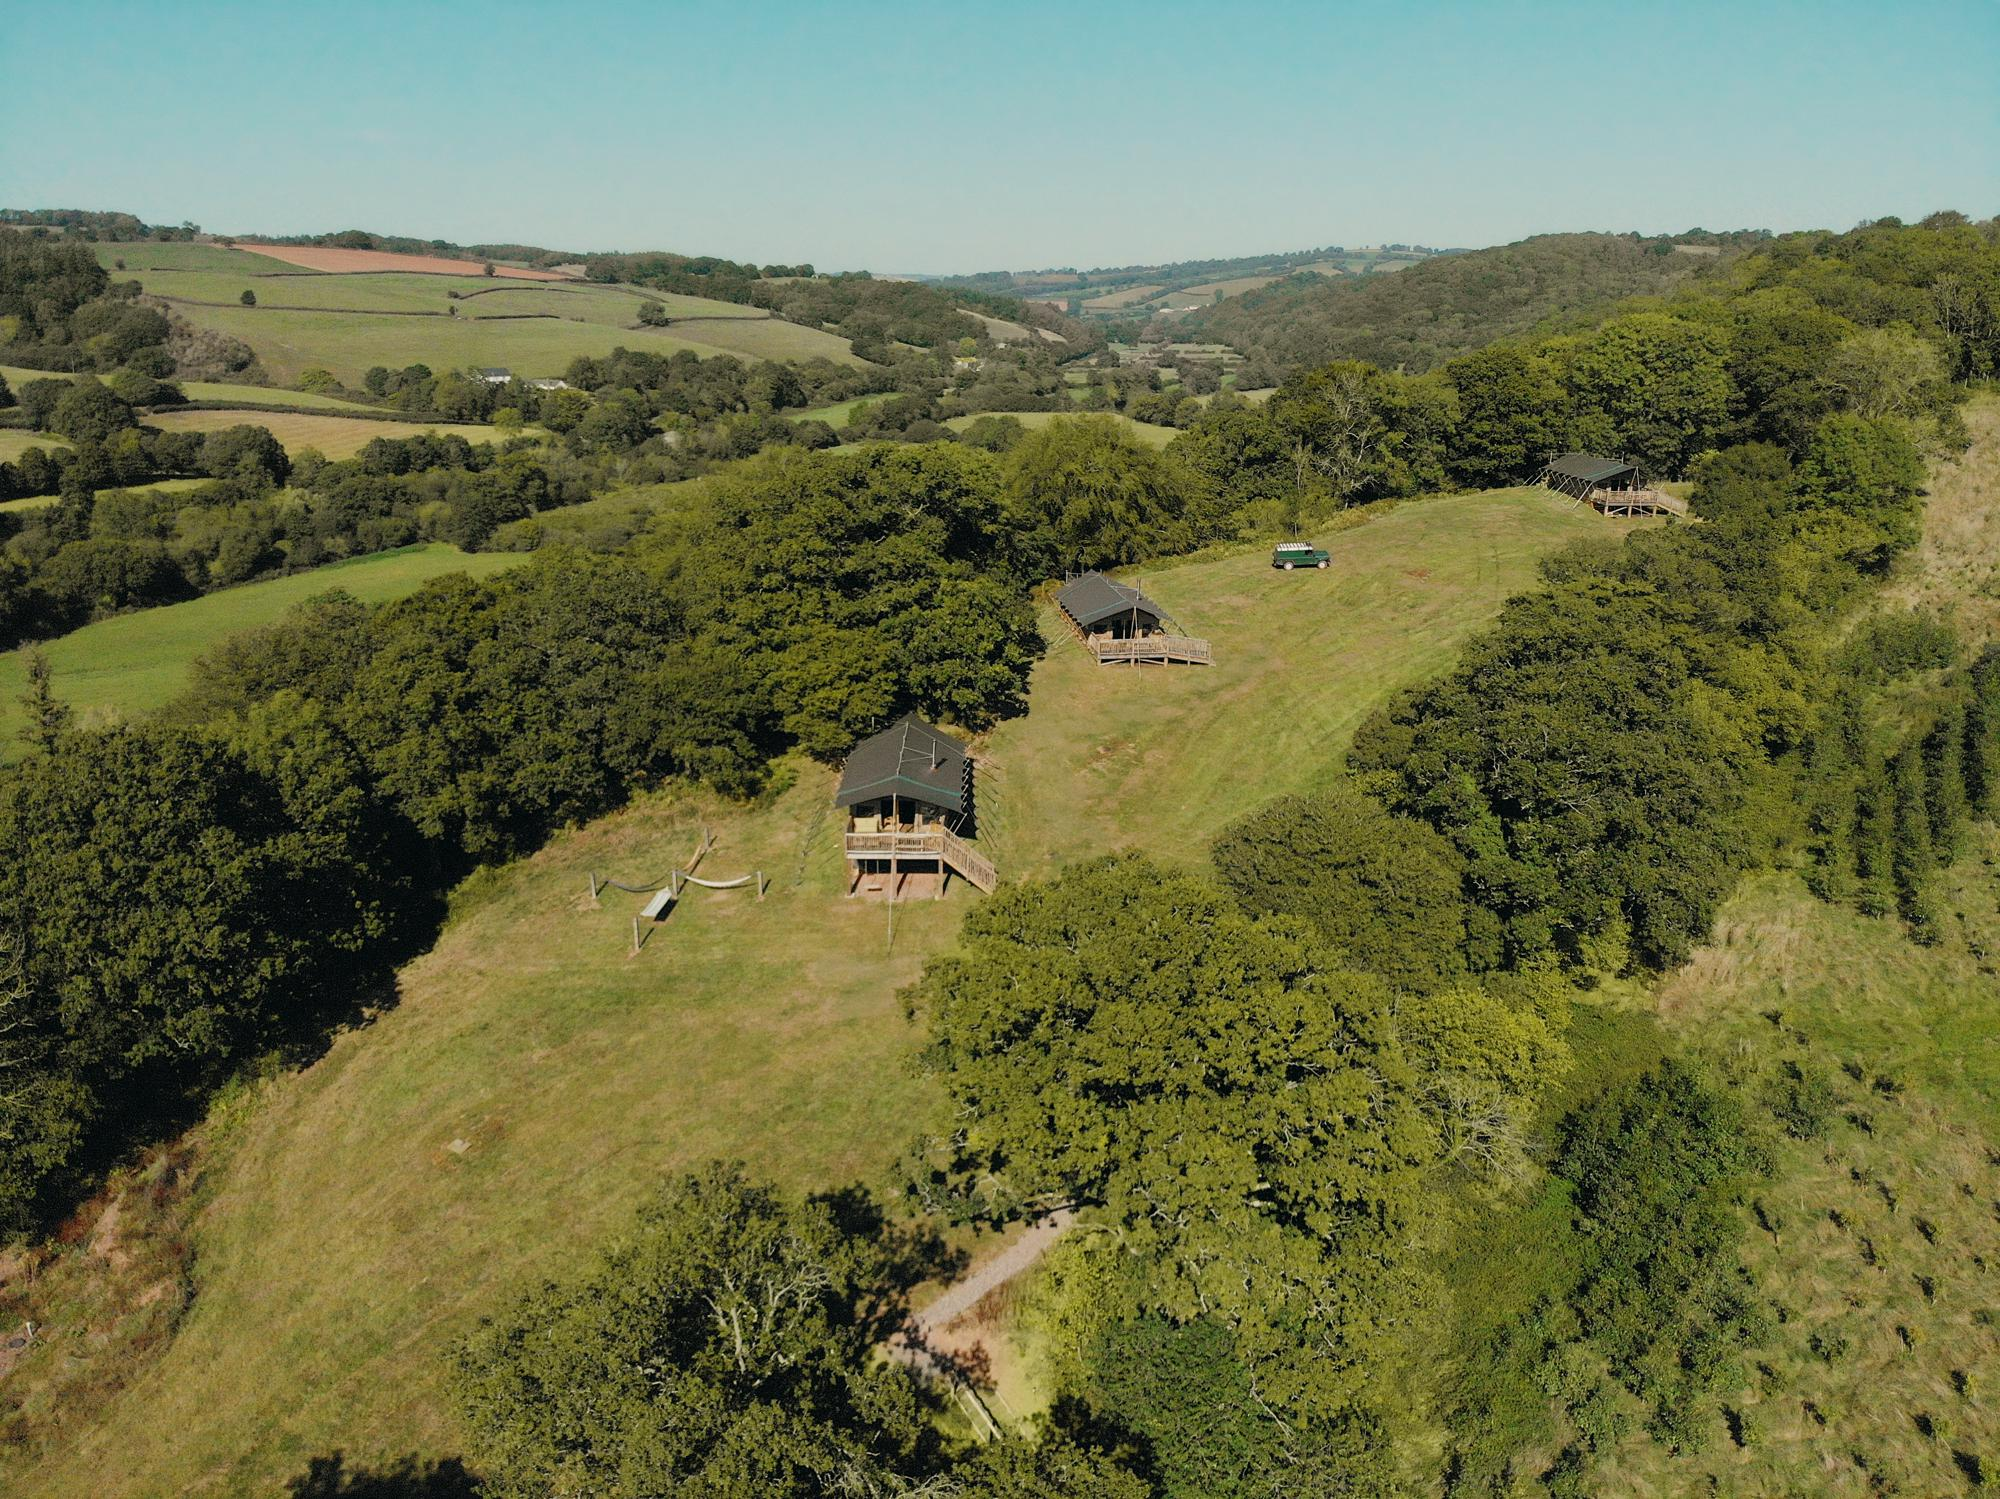 Campsites in South West England holidays at Cool Places